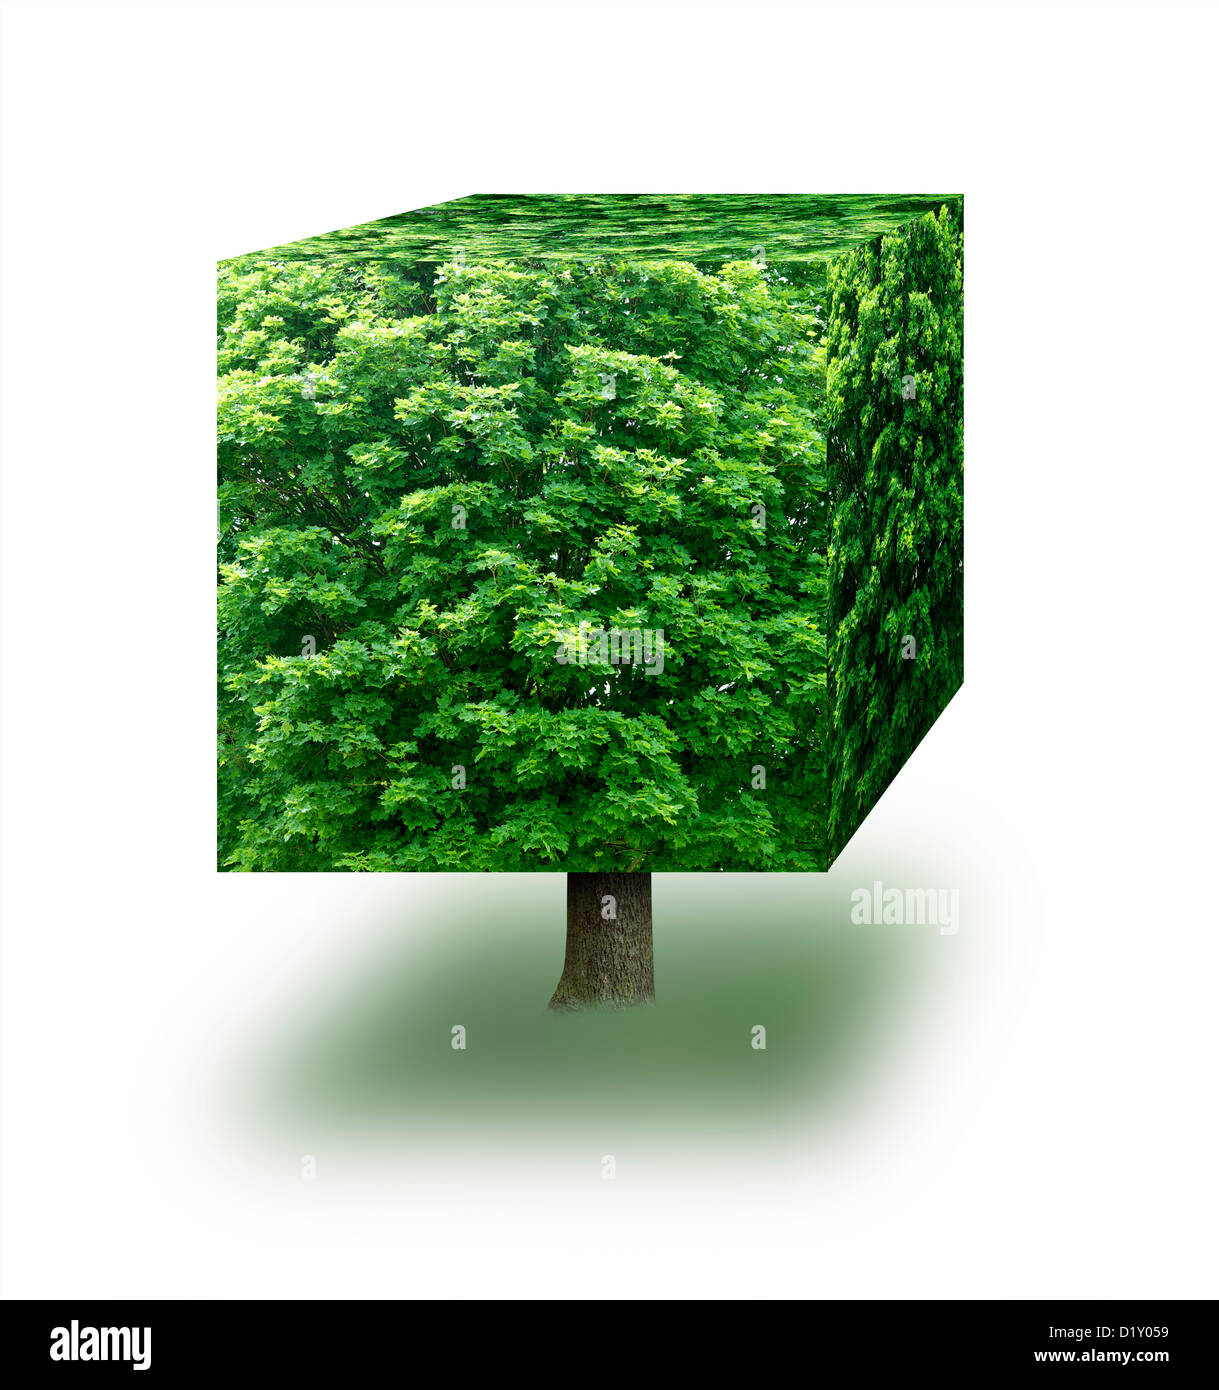 Cube made from a tree against a white background - Stock Image